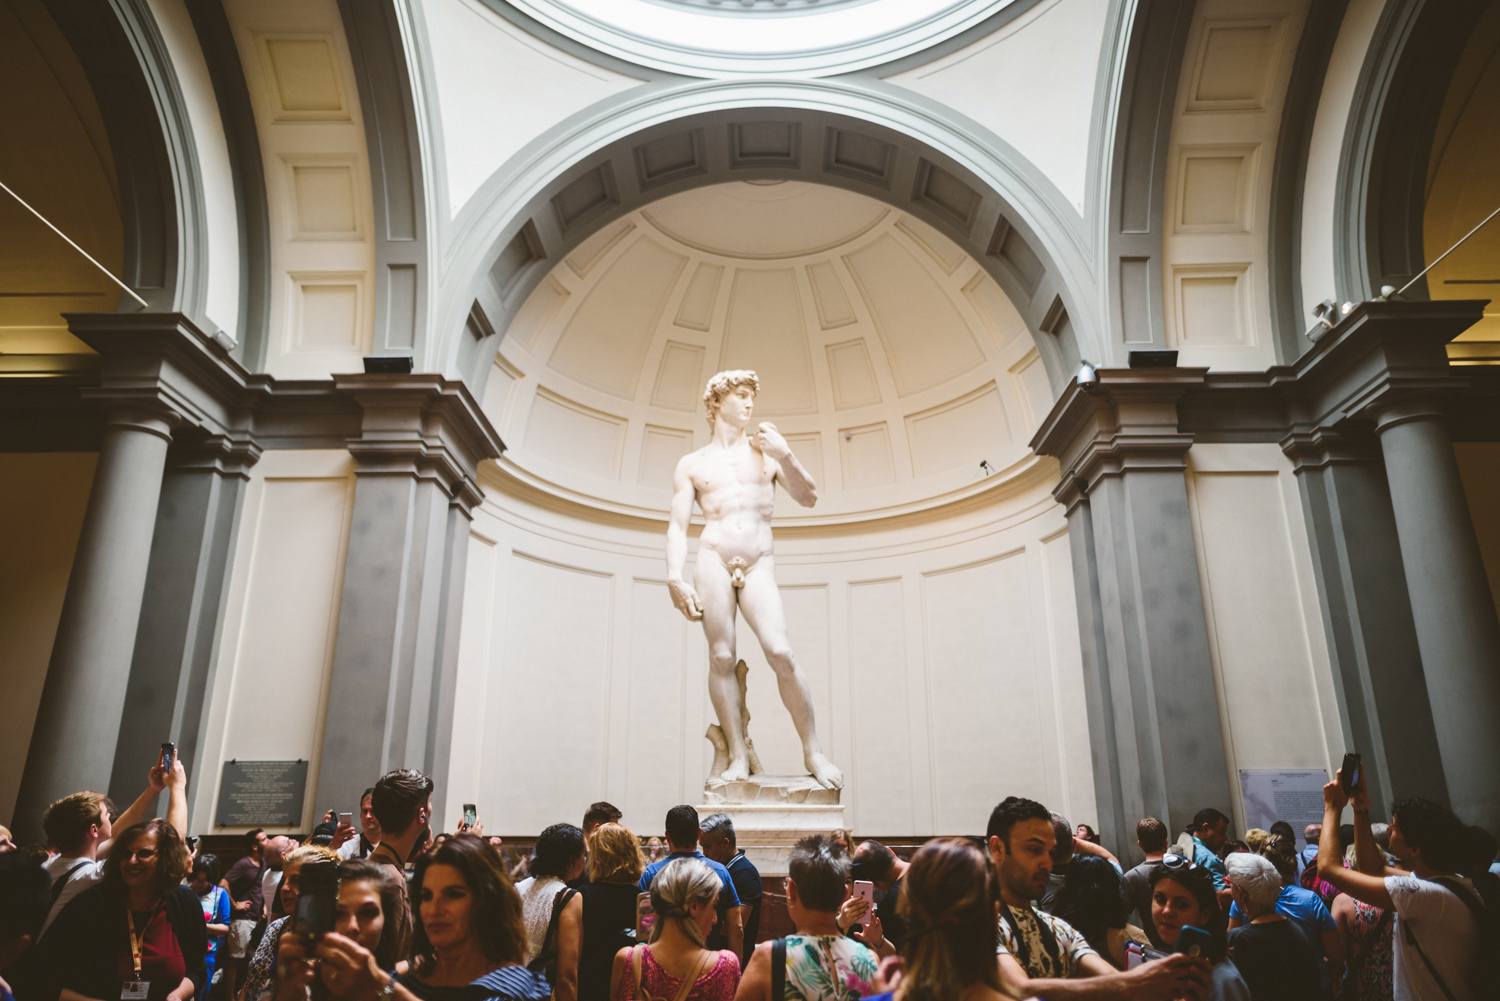 077 - michaelangelo's david sculpture in italy perfect.jpg